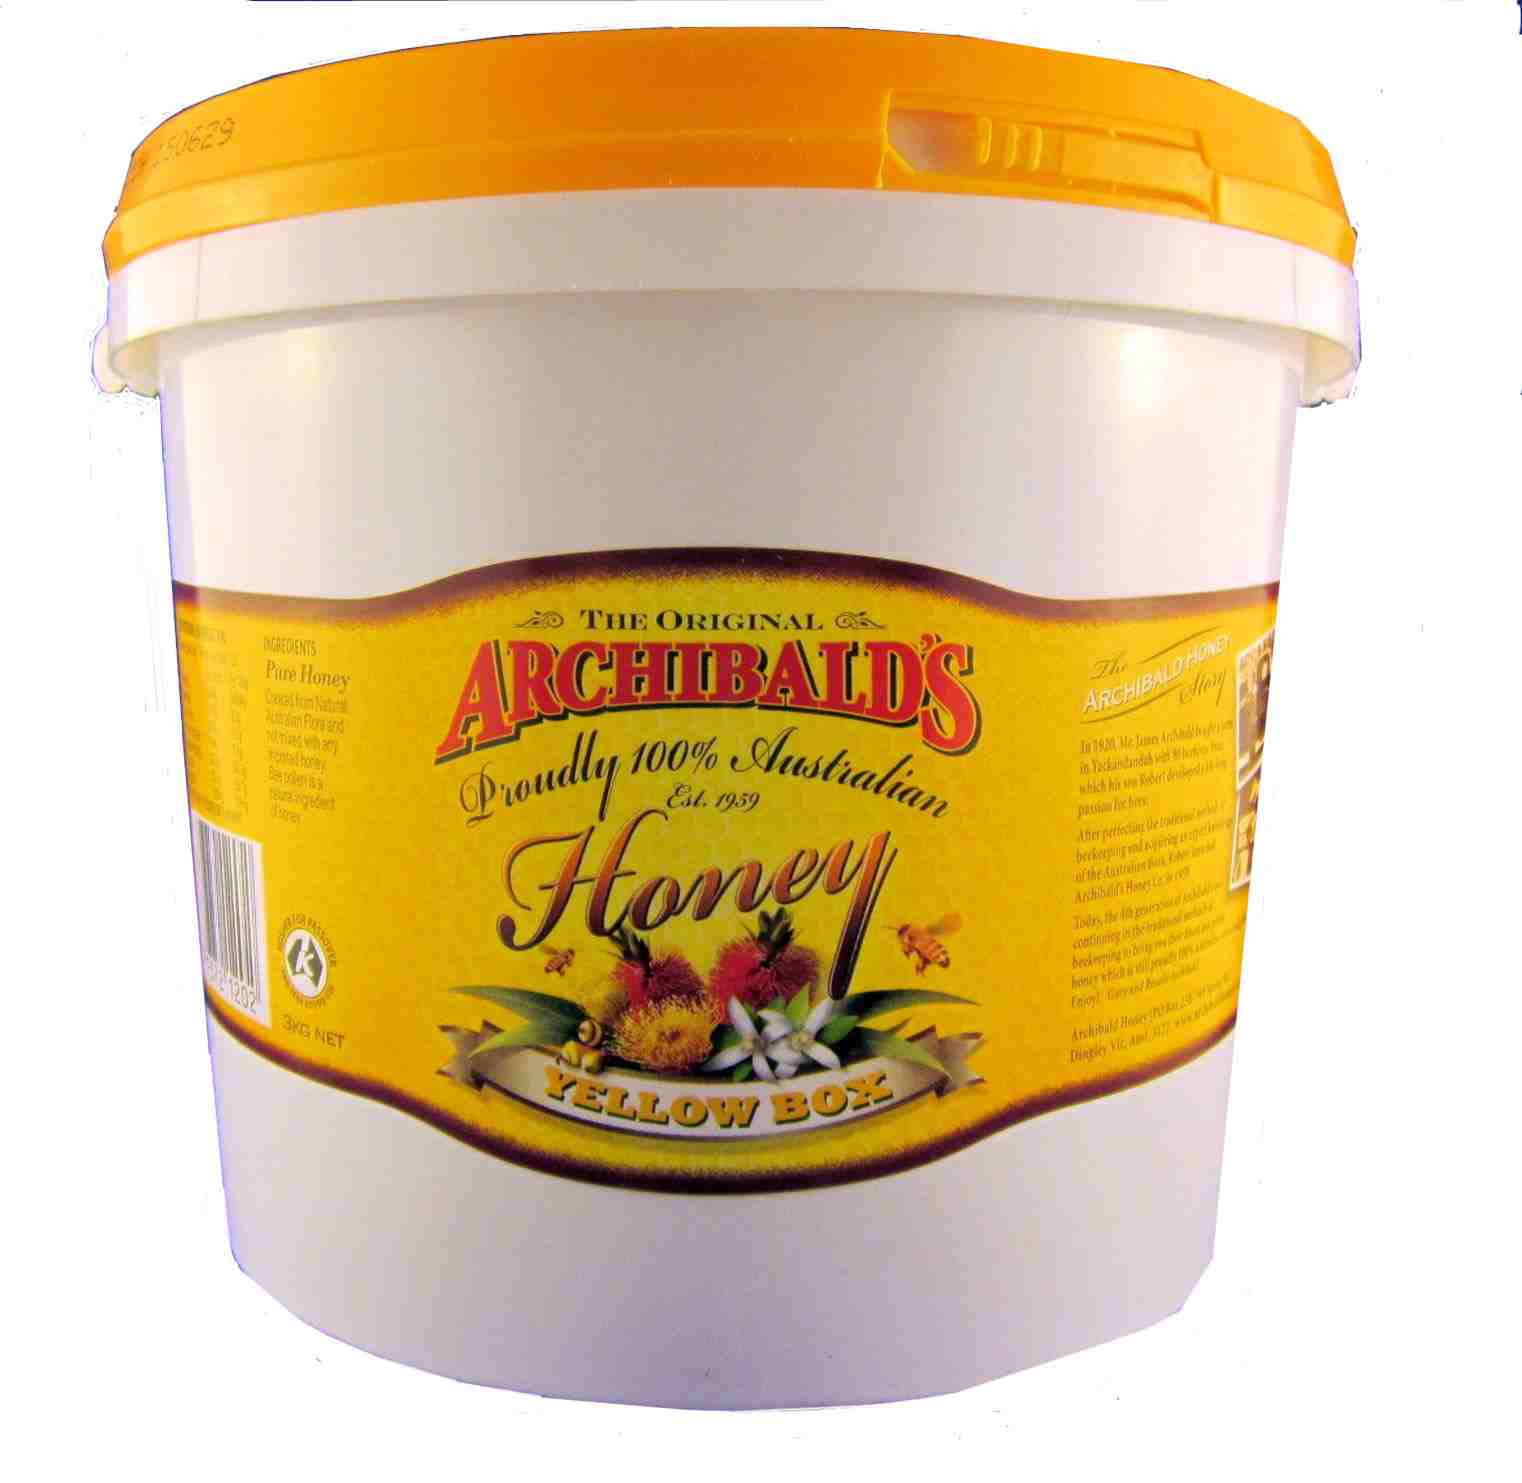 Archibalds Yellow Box honey, 3kg